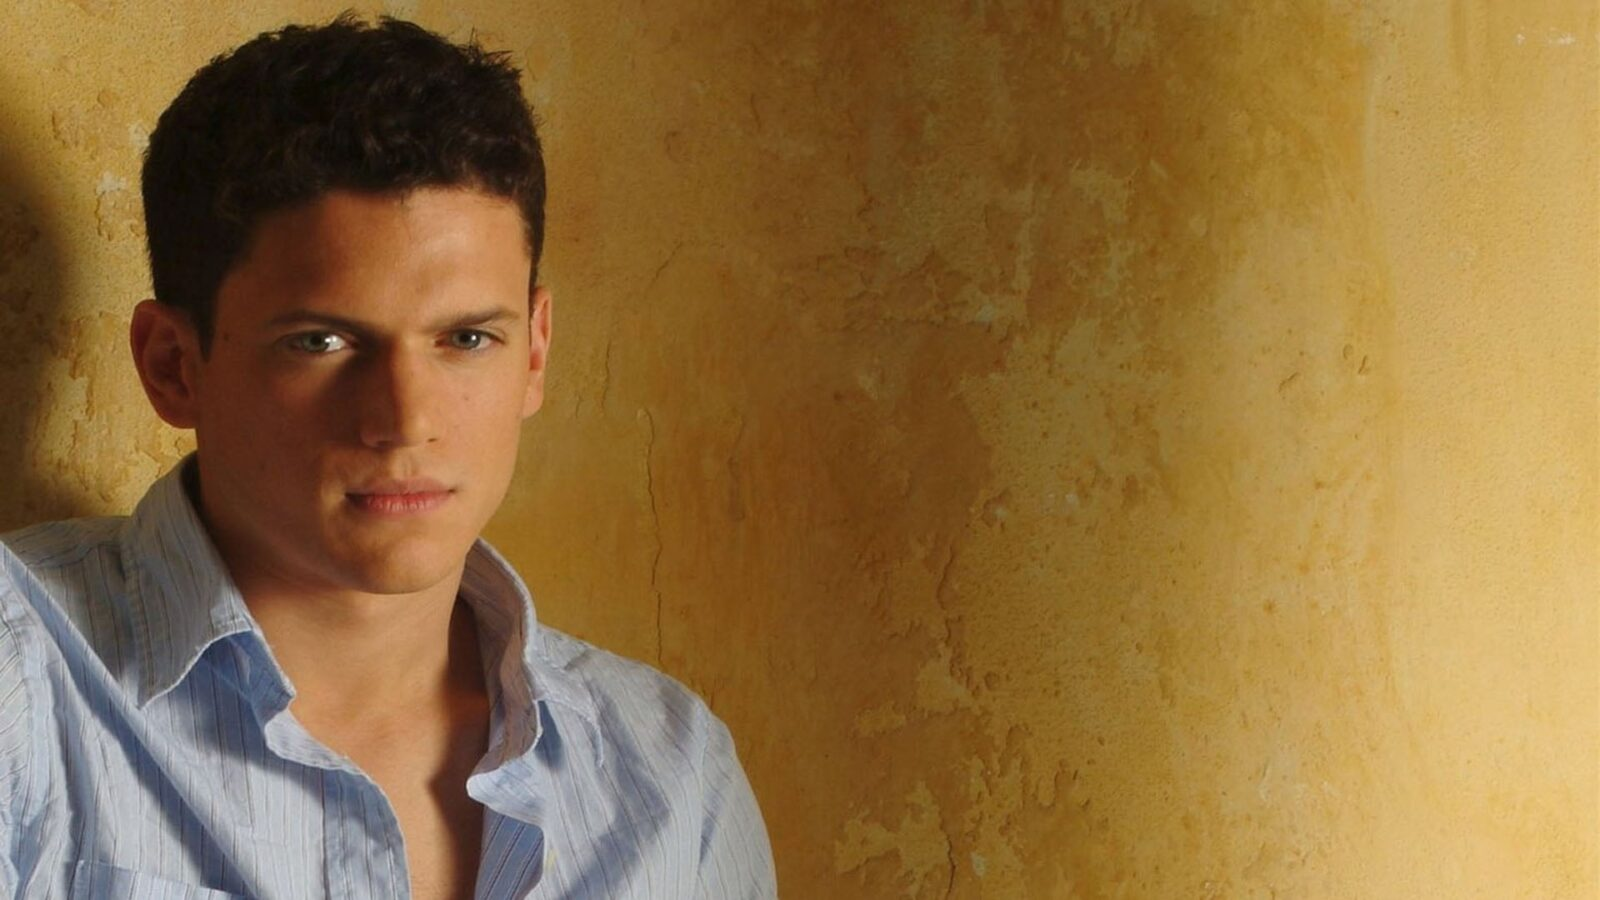 Wallpaper of Wentworth Miller young for iPad